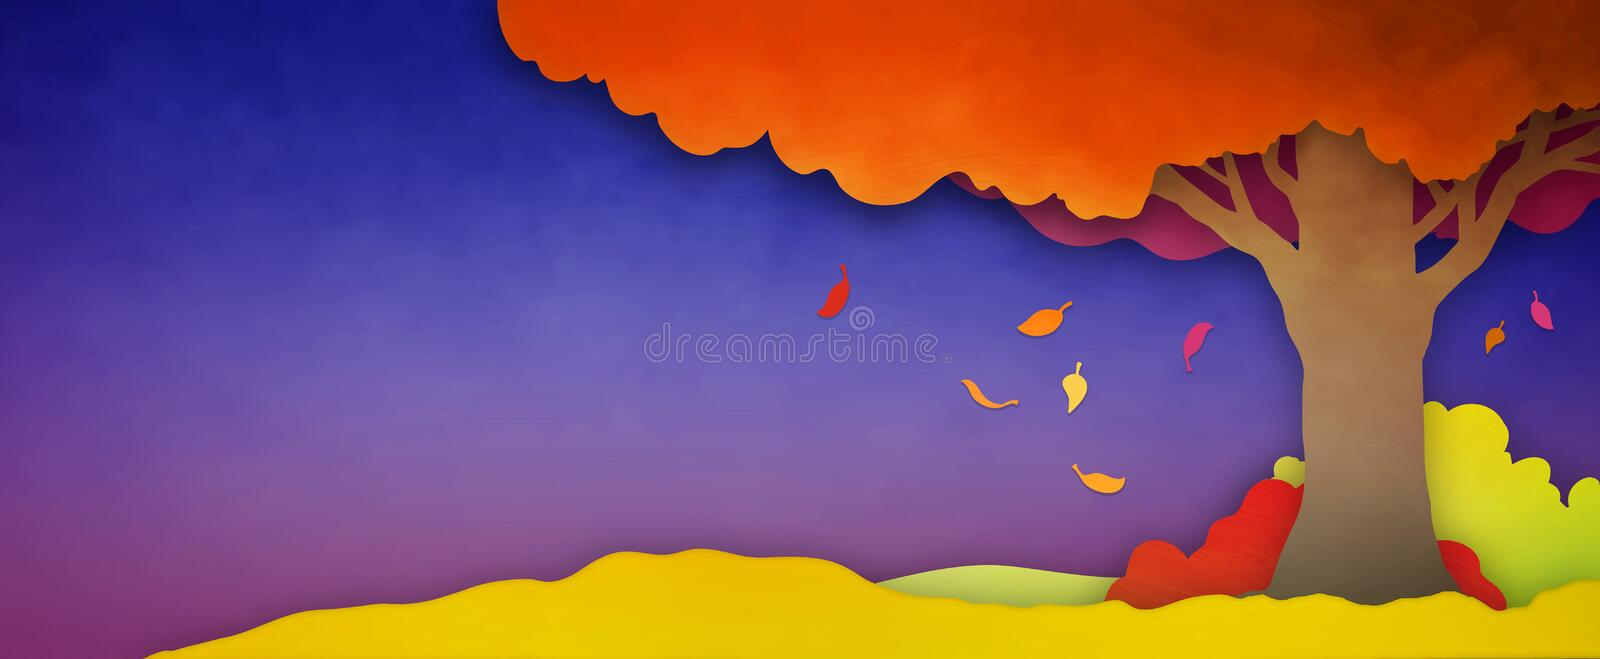 Autumn or fall season background landscape with falling leaves from colorful tree in orange yellow red and pink colors on purple b royalty free illustration